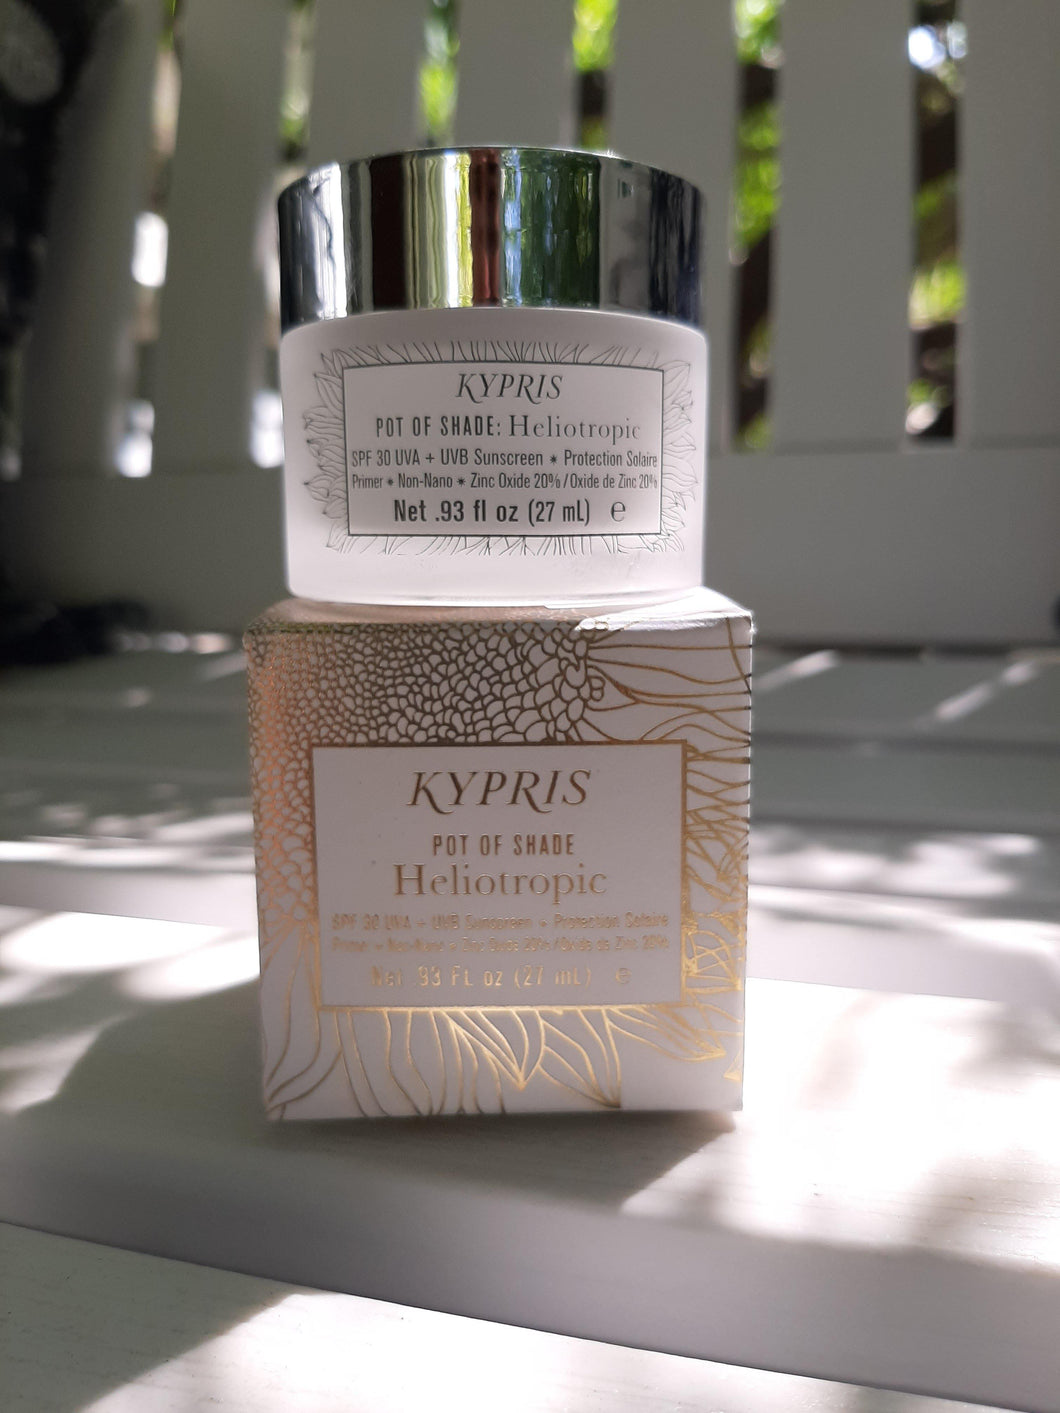 Kypris Pot of Shade Heliotropic SPF - Carasoin